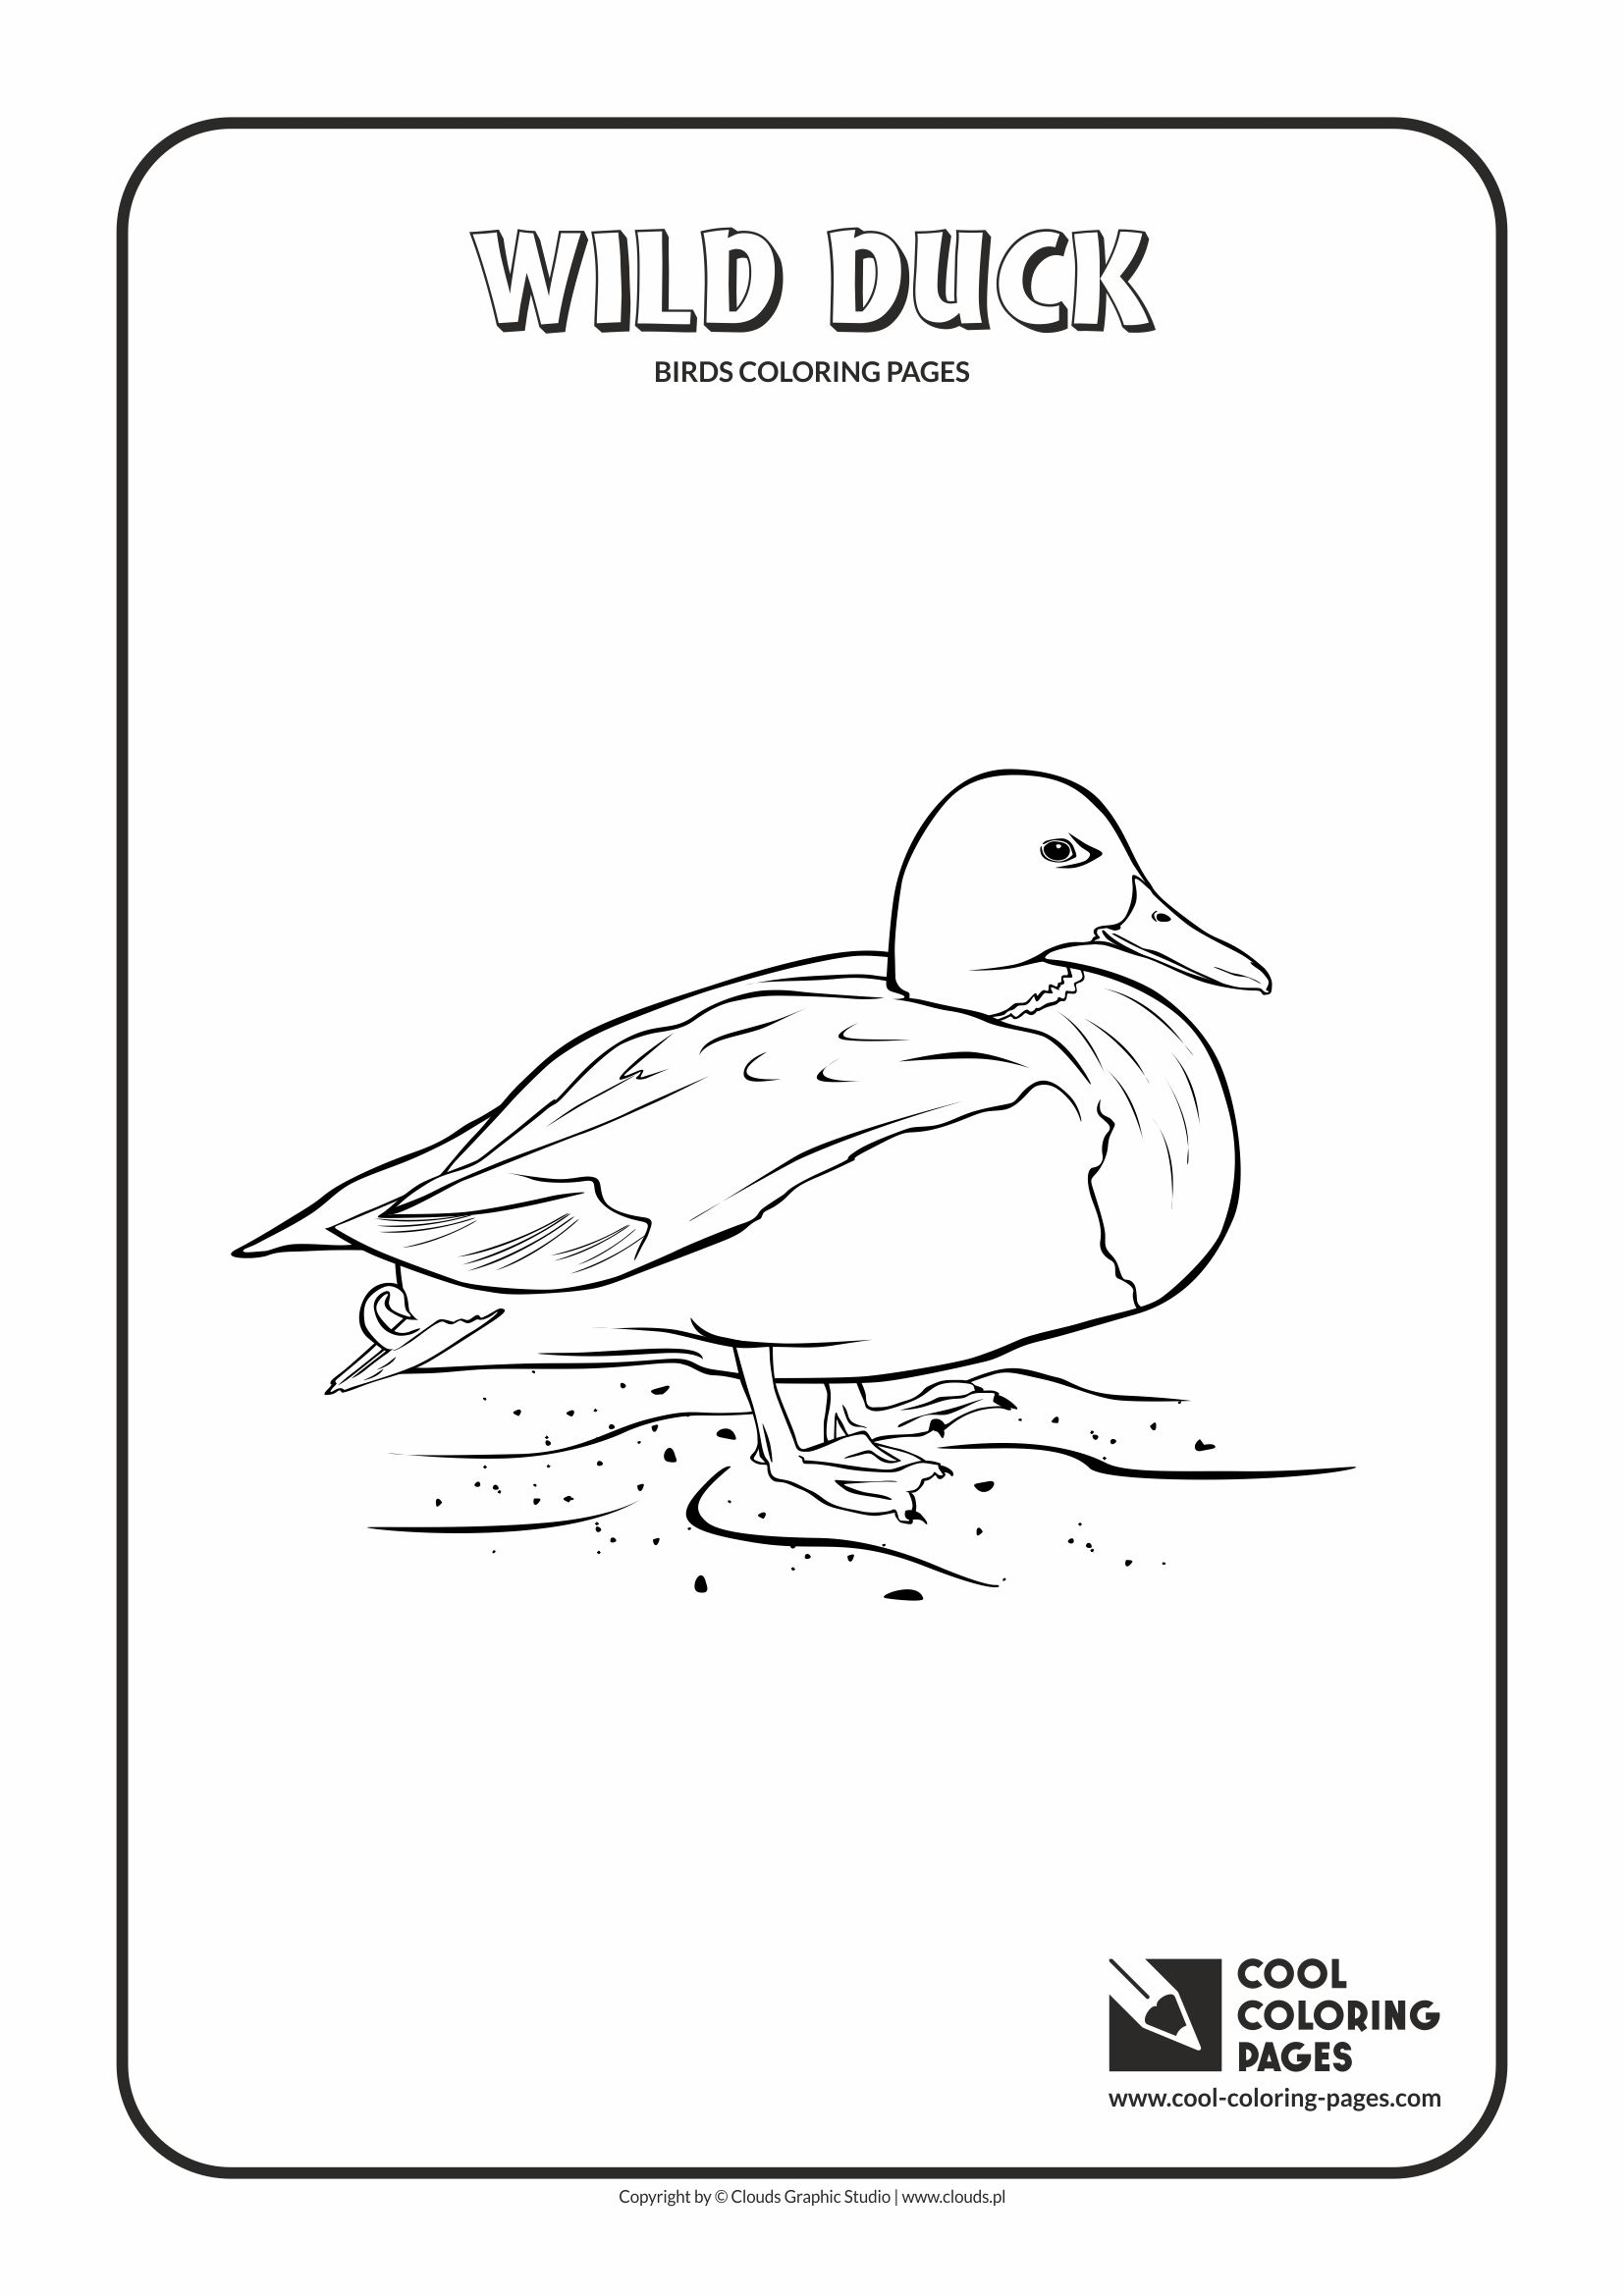 Cool Coloring Pages - Animals / Wild duck / Coloring page with wild duck